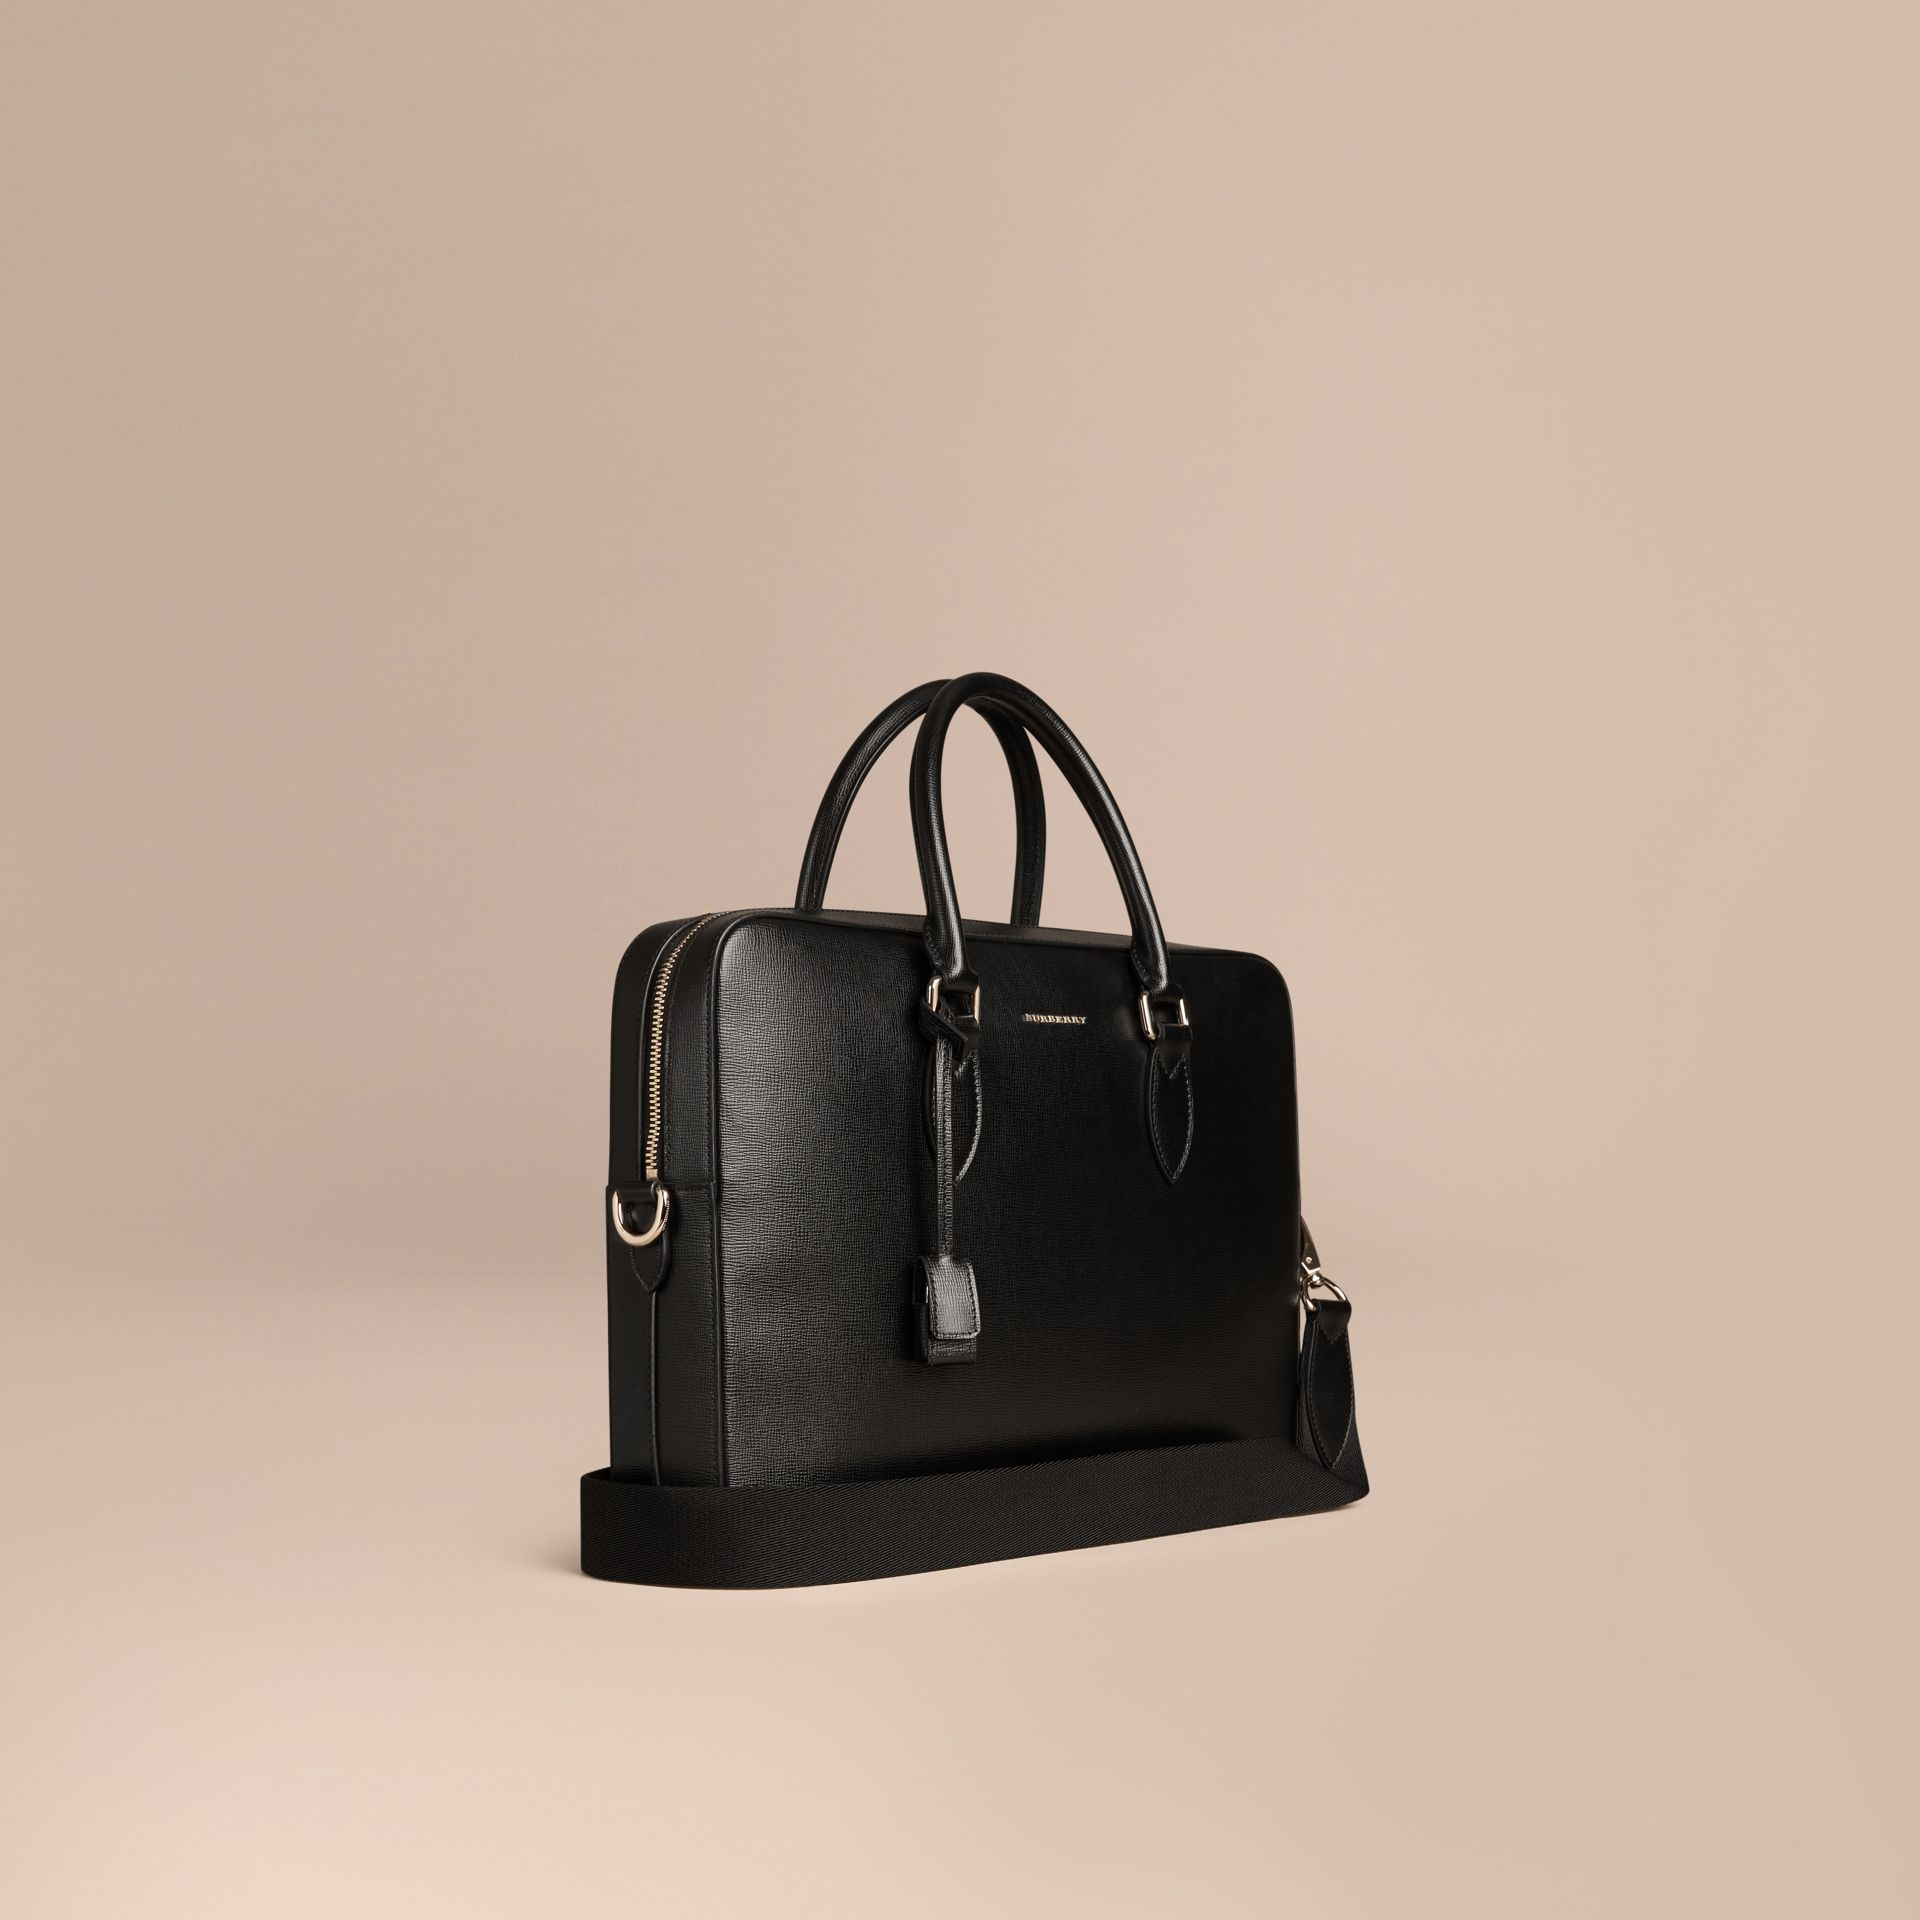 Black Medium London Leather Briefcase Black - gallery image 1